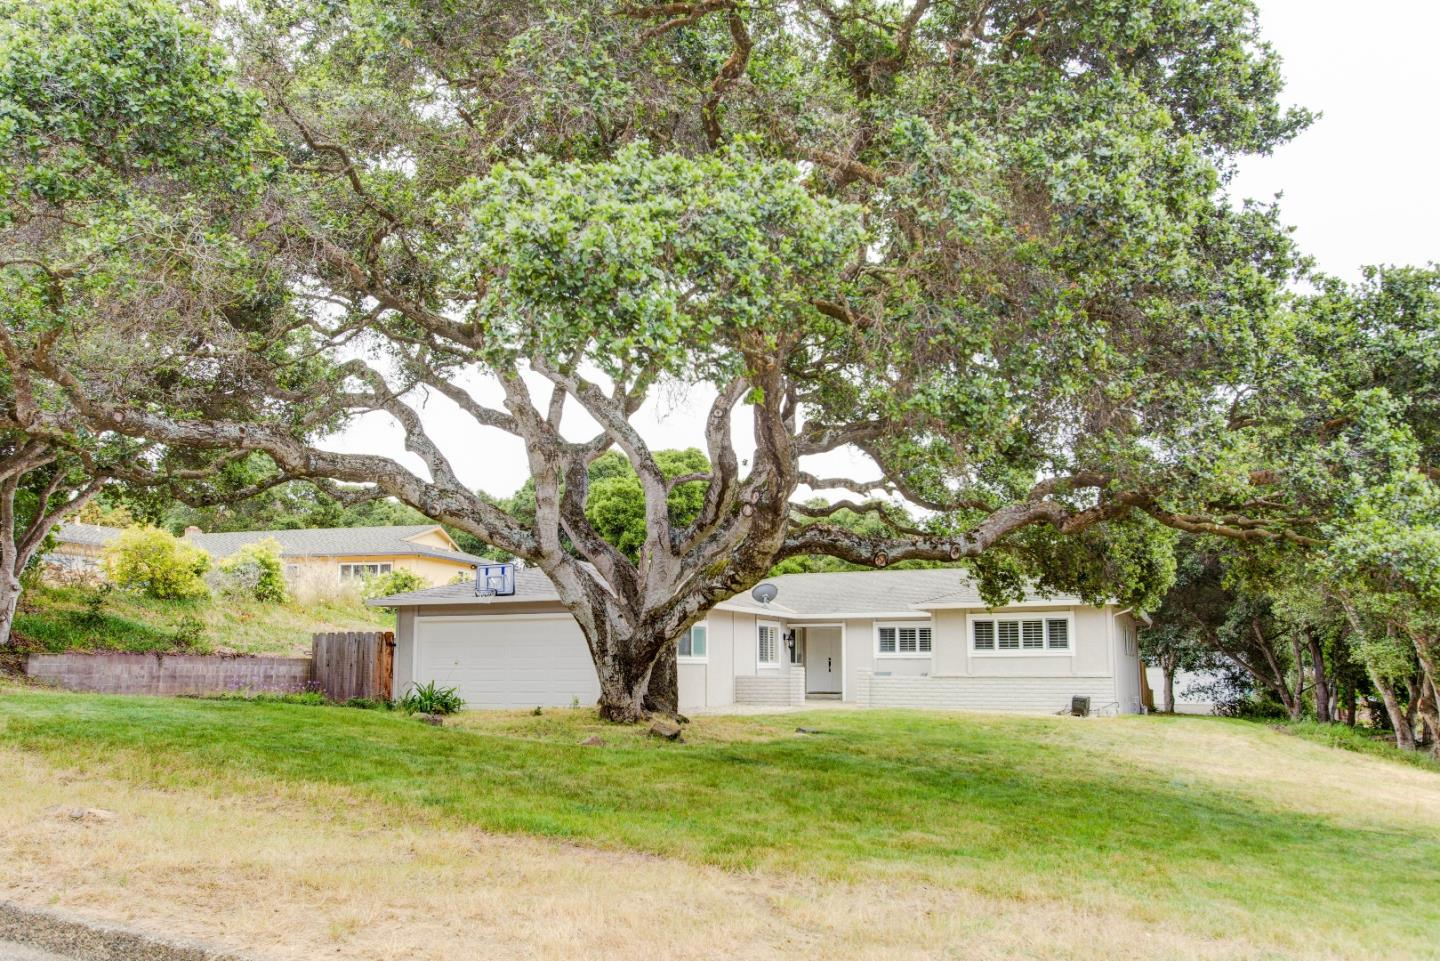 Additional photo for property listing at 9405 Silk Oak Place  Salinas, California 93907 United States